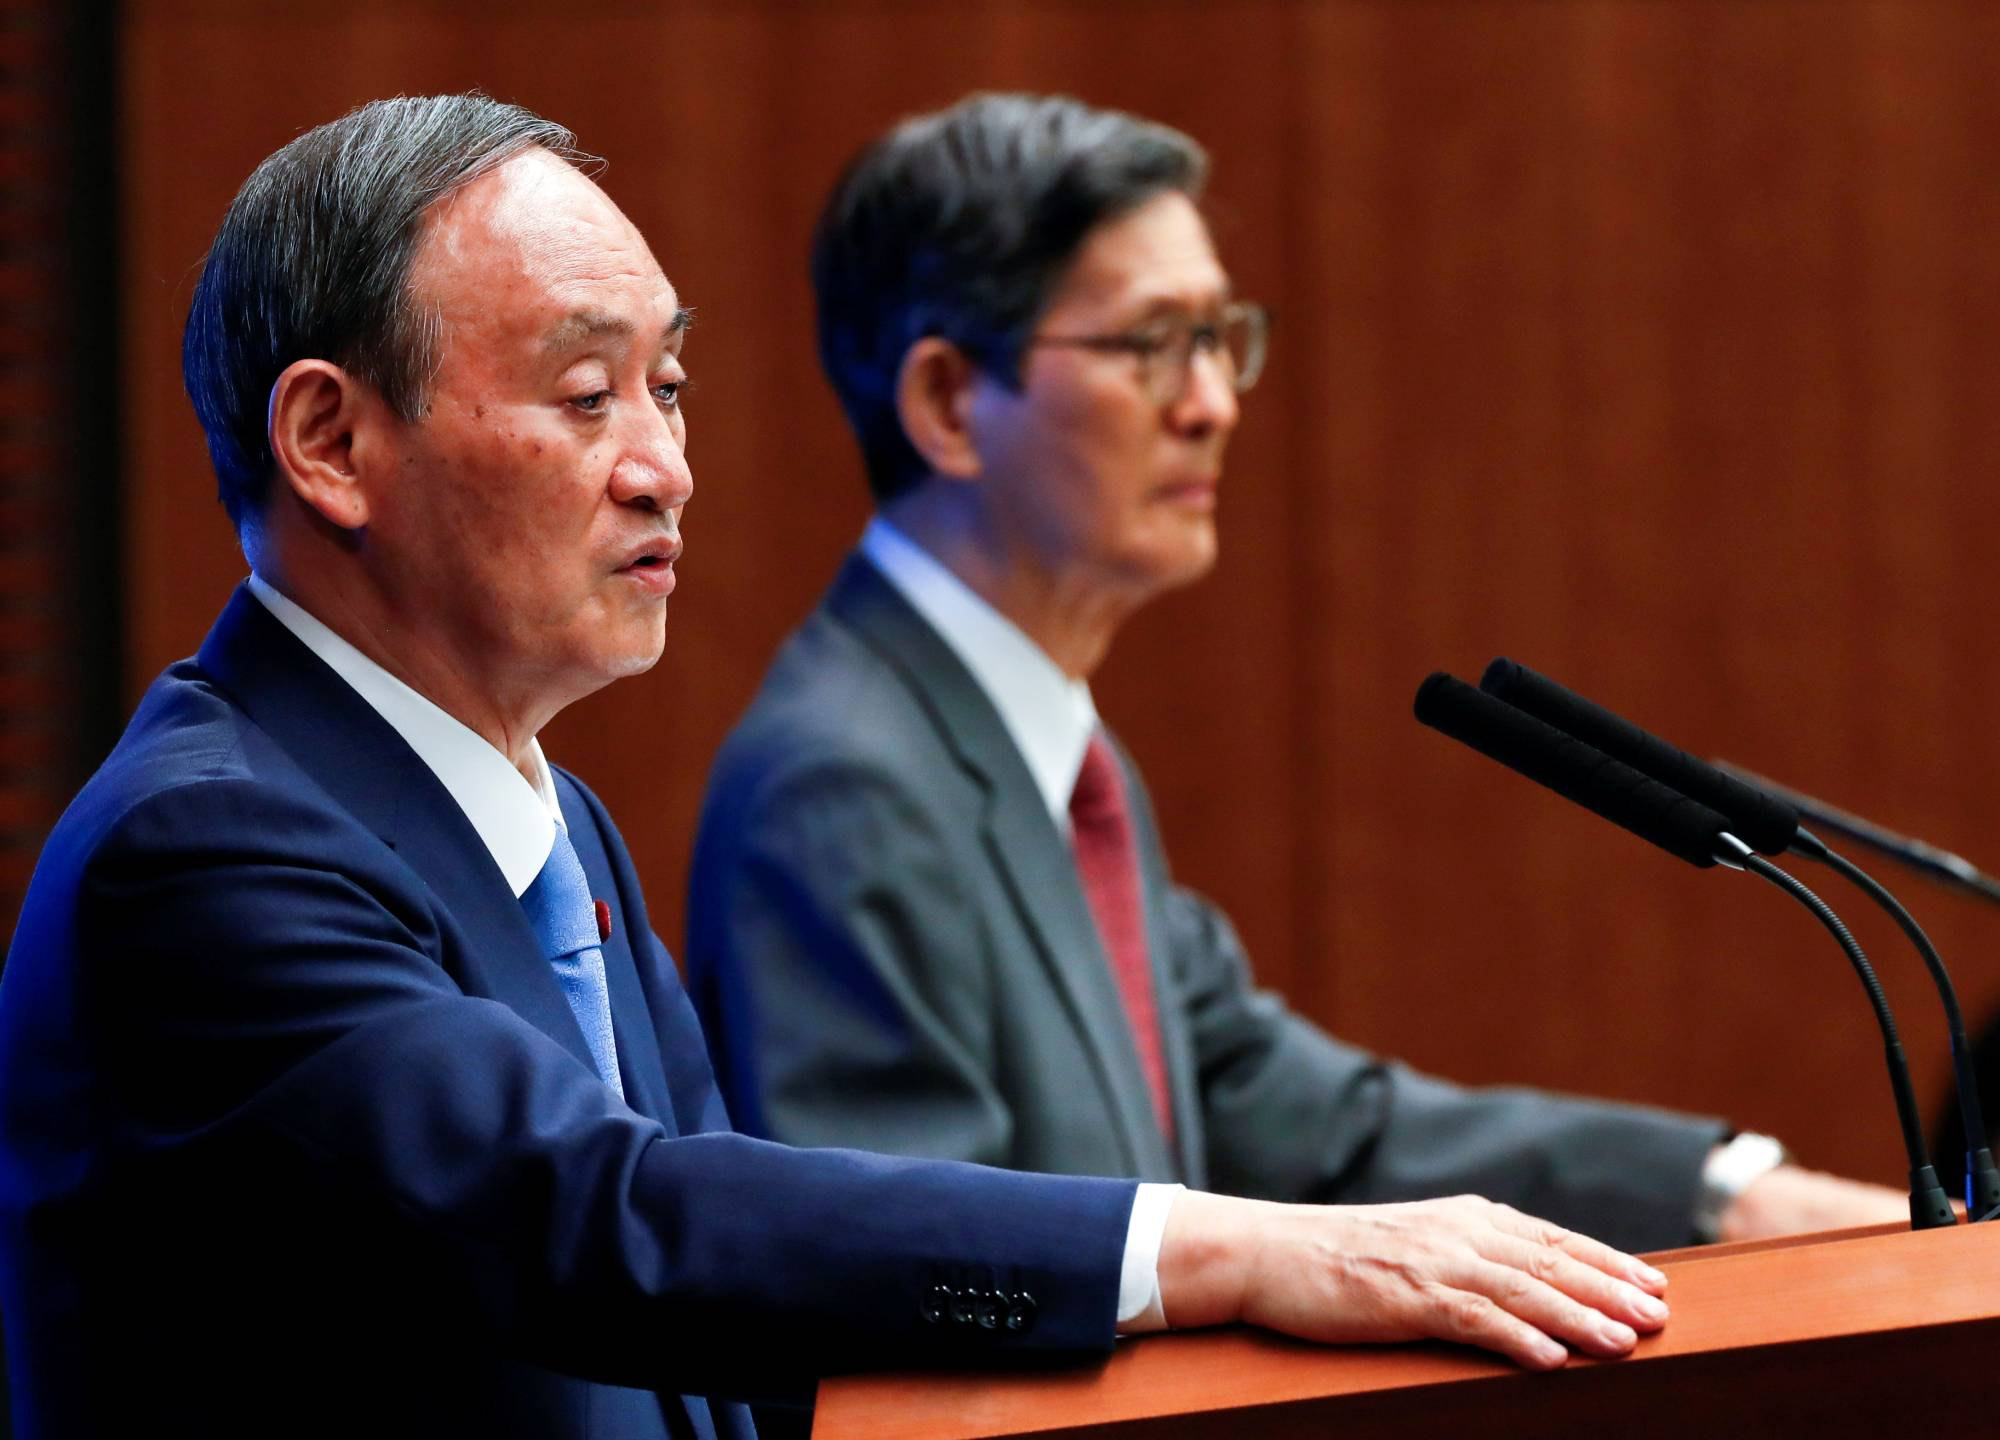 Prime Minister Yoshihide Suga and Shigeru Omi, chairman of the government's pandemic advisory panel, hold a news conference in Tokyo on Thursday. | POOL / VIA REUTERS